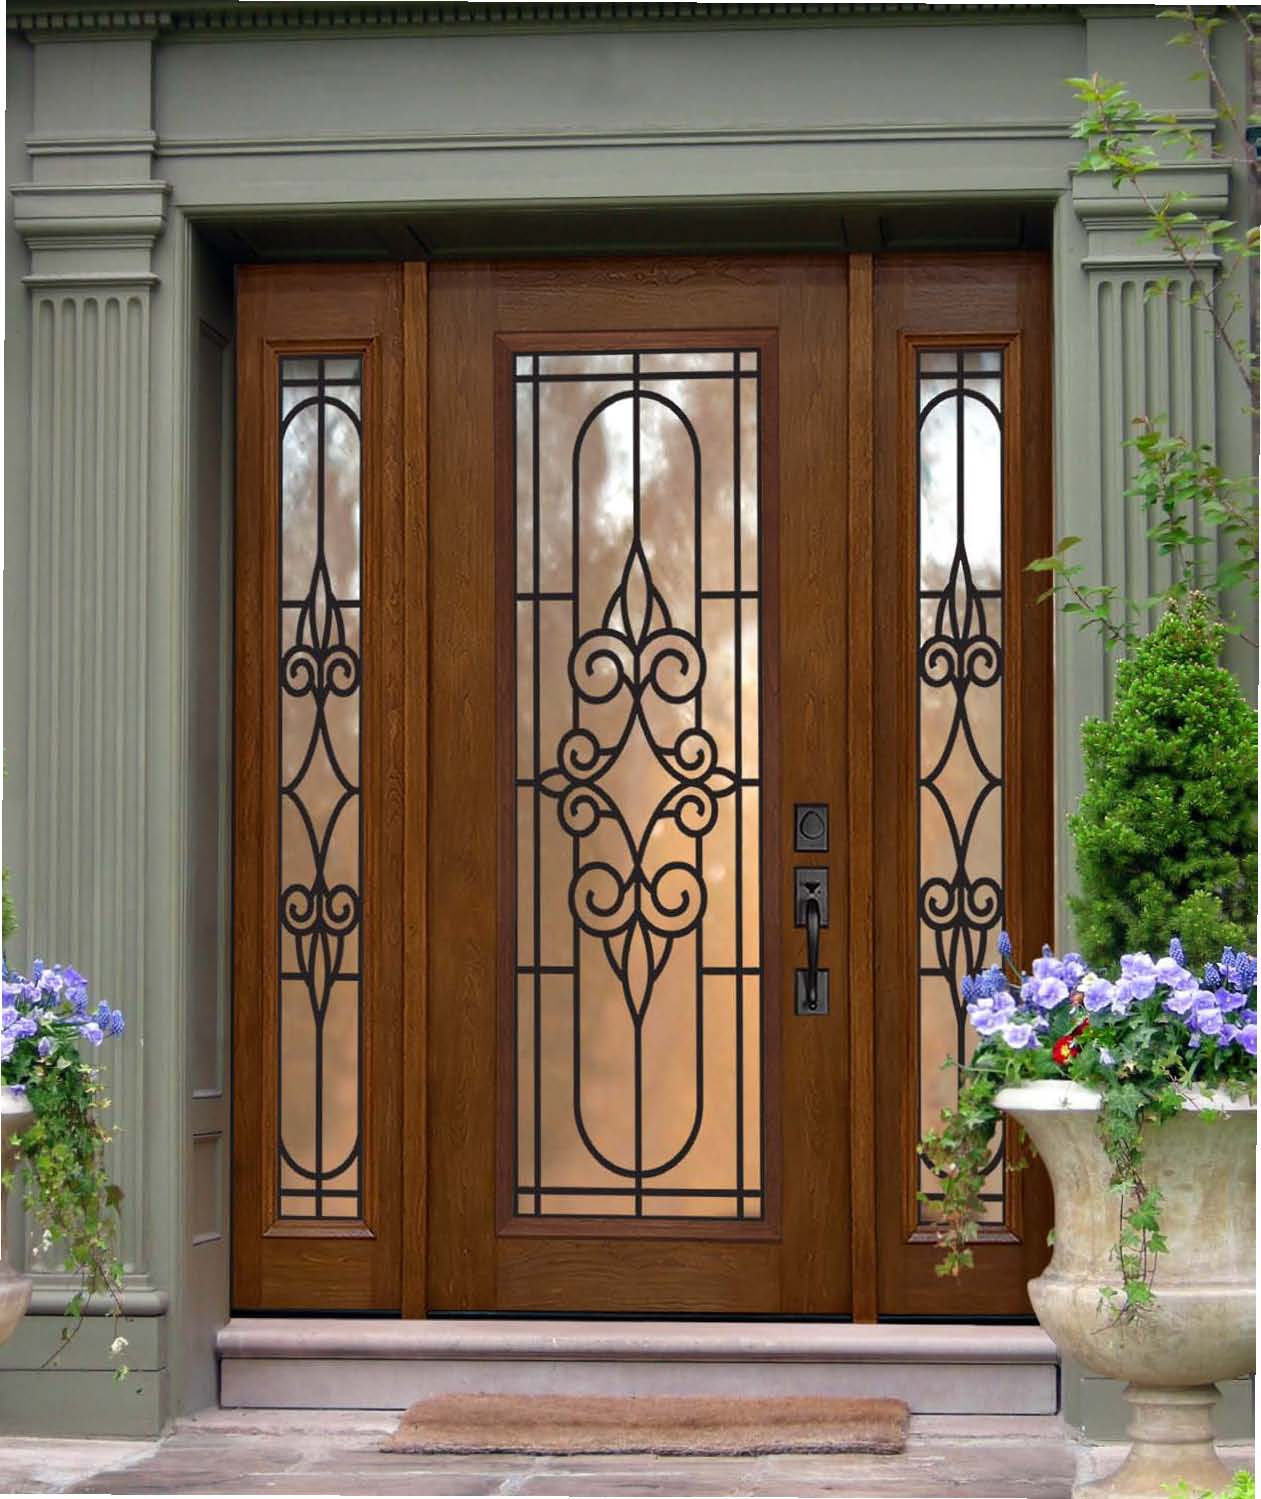 1499 #613B1E US Door And More Inc.: Make Your Entry Door Trendy With Sidelights image Exterior Doors With Sidelites 40931261